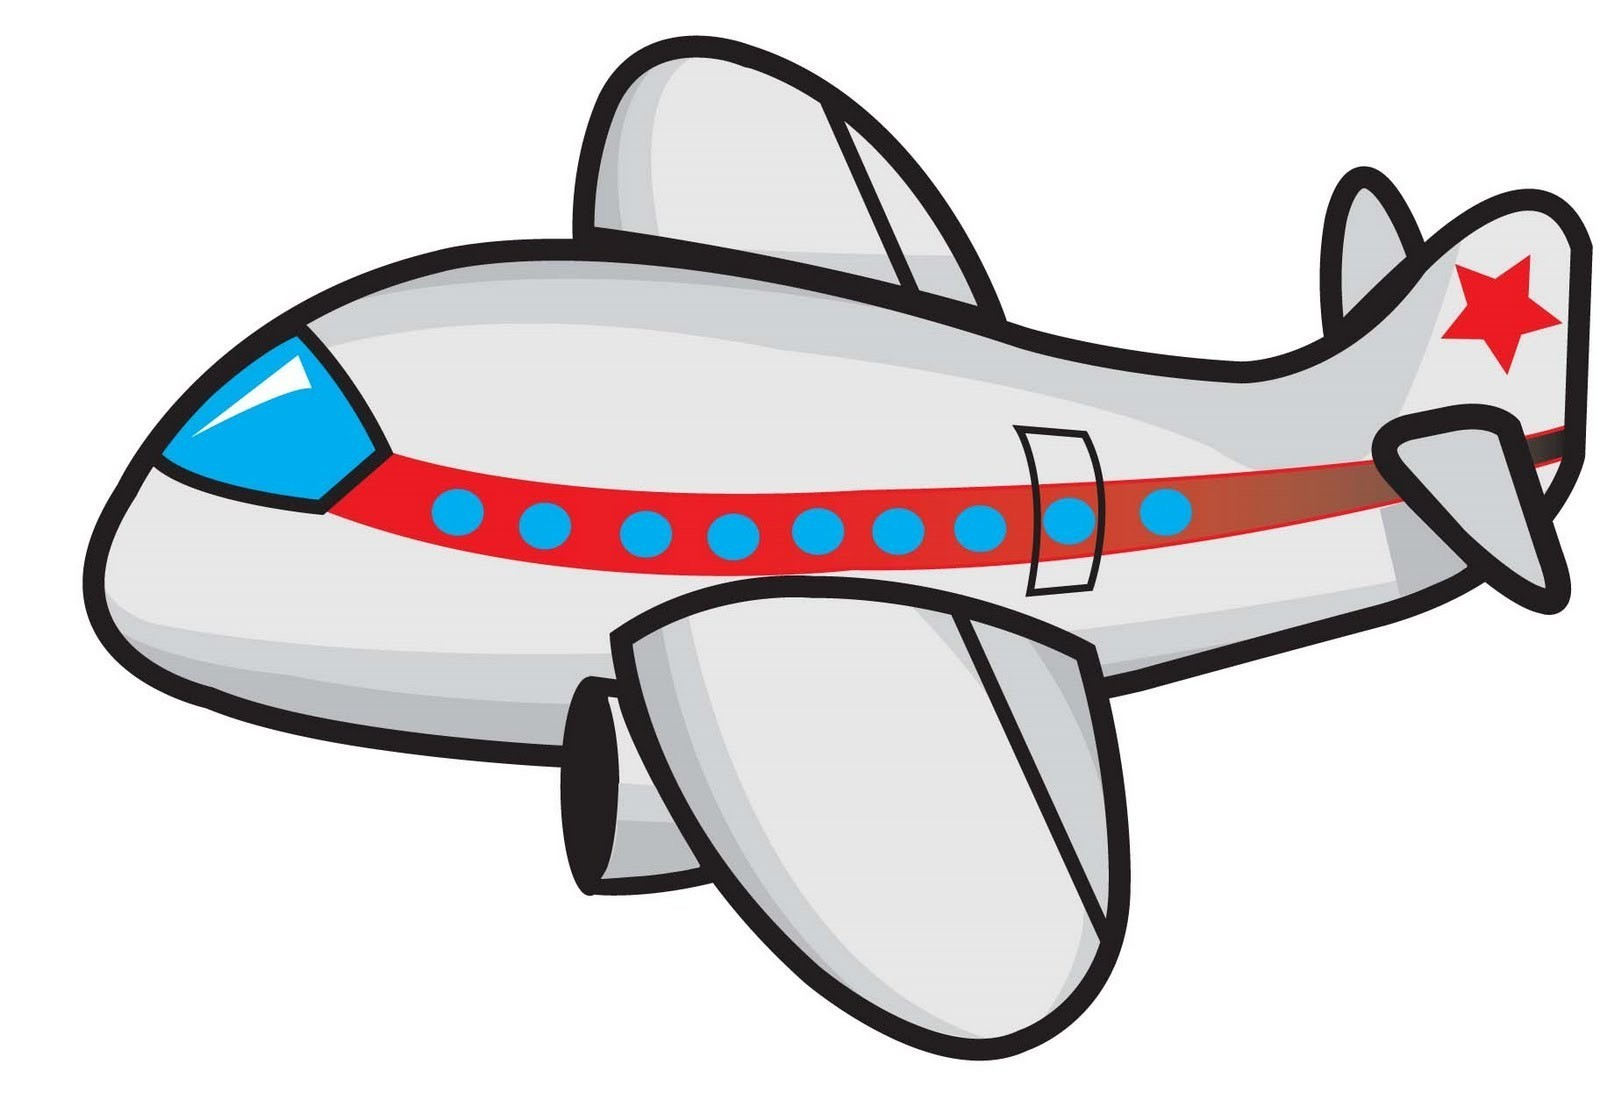 Collection of Aeroplane clipart.